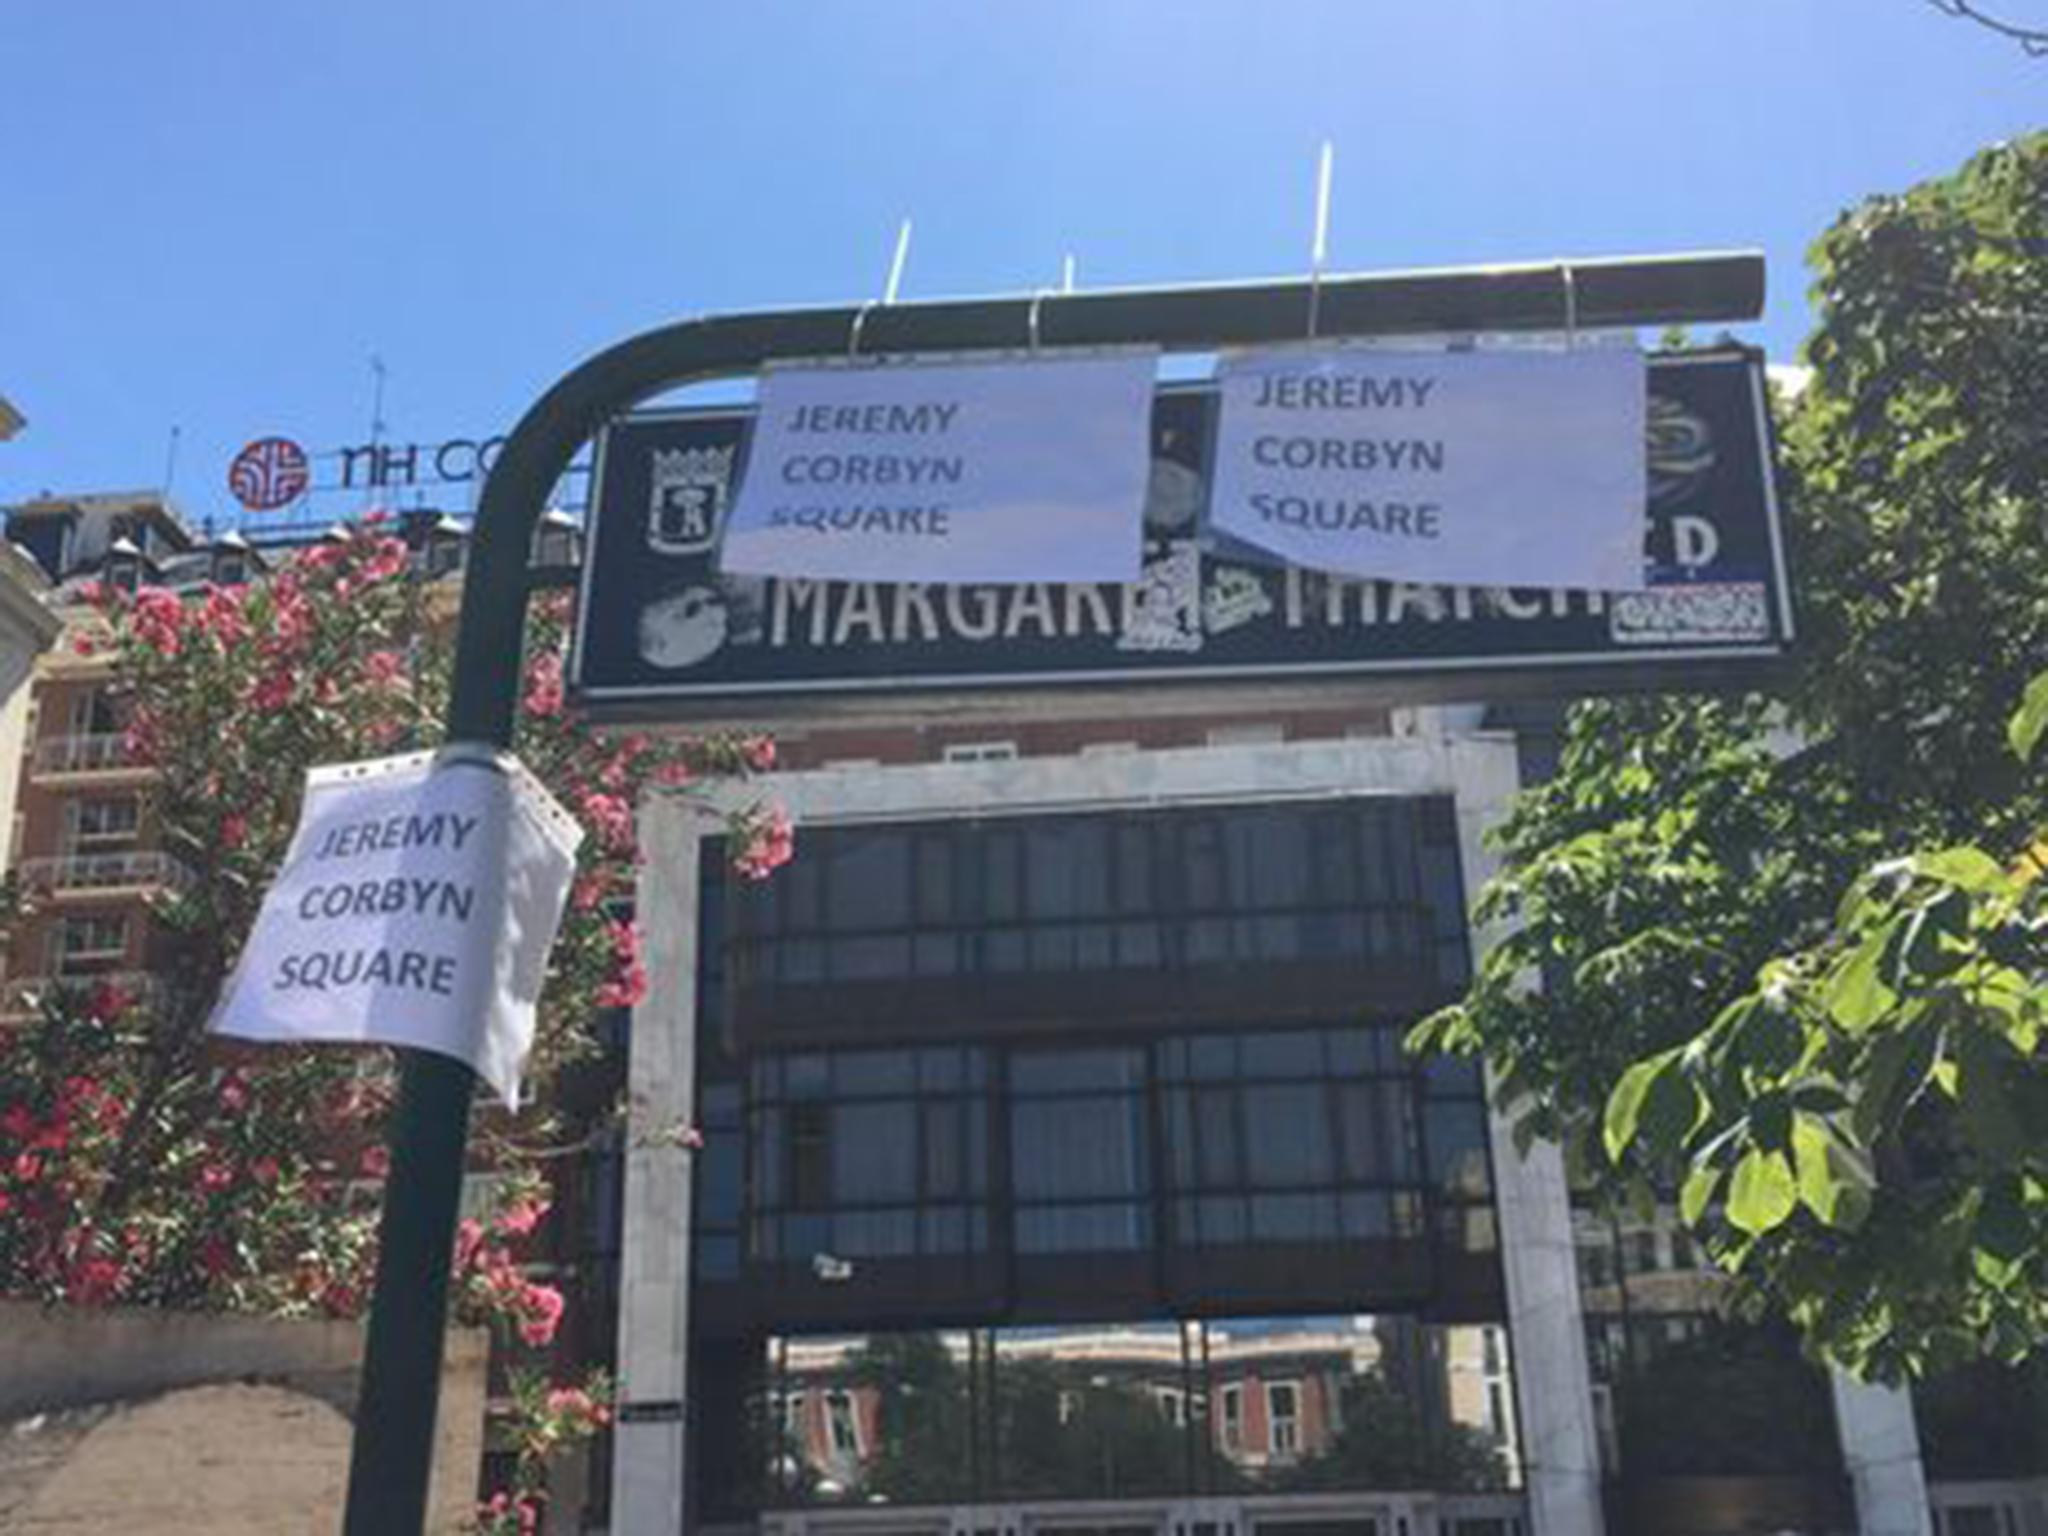 Champions League final: Liverpool fans rename Margaret Thatcher Square in Madrid as Jeremy Corbyn Square